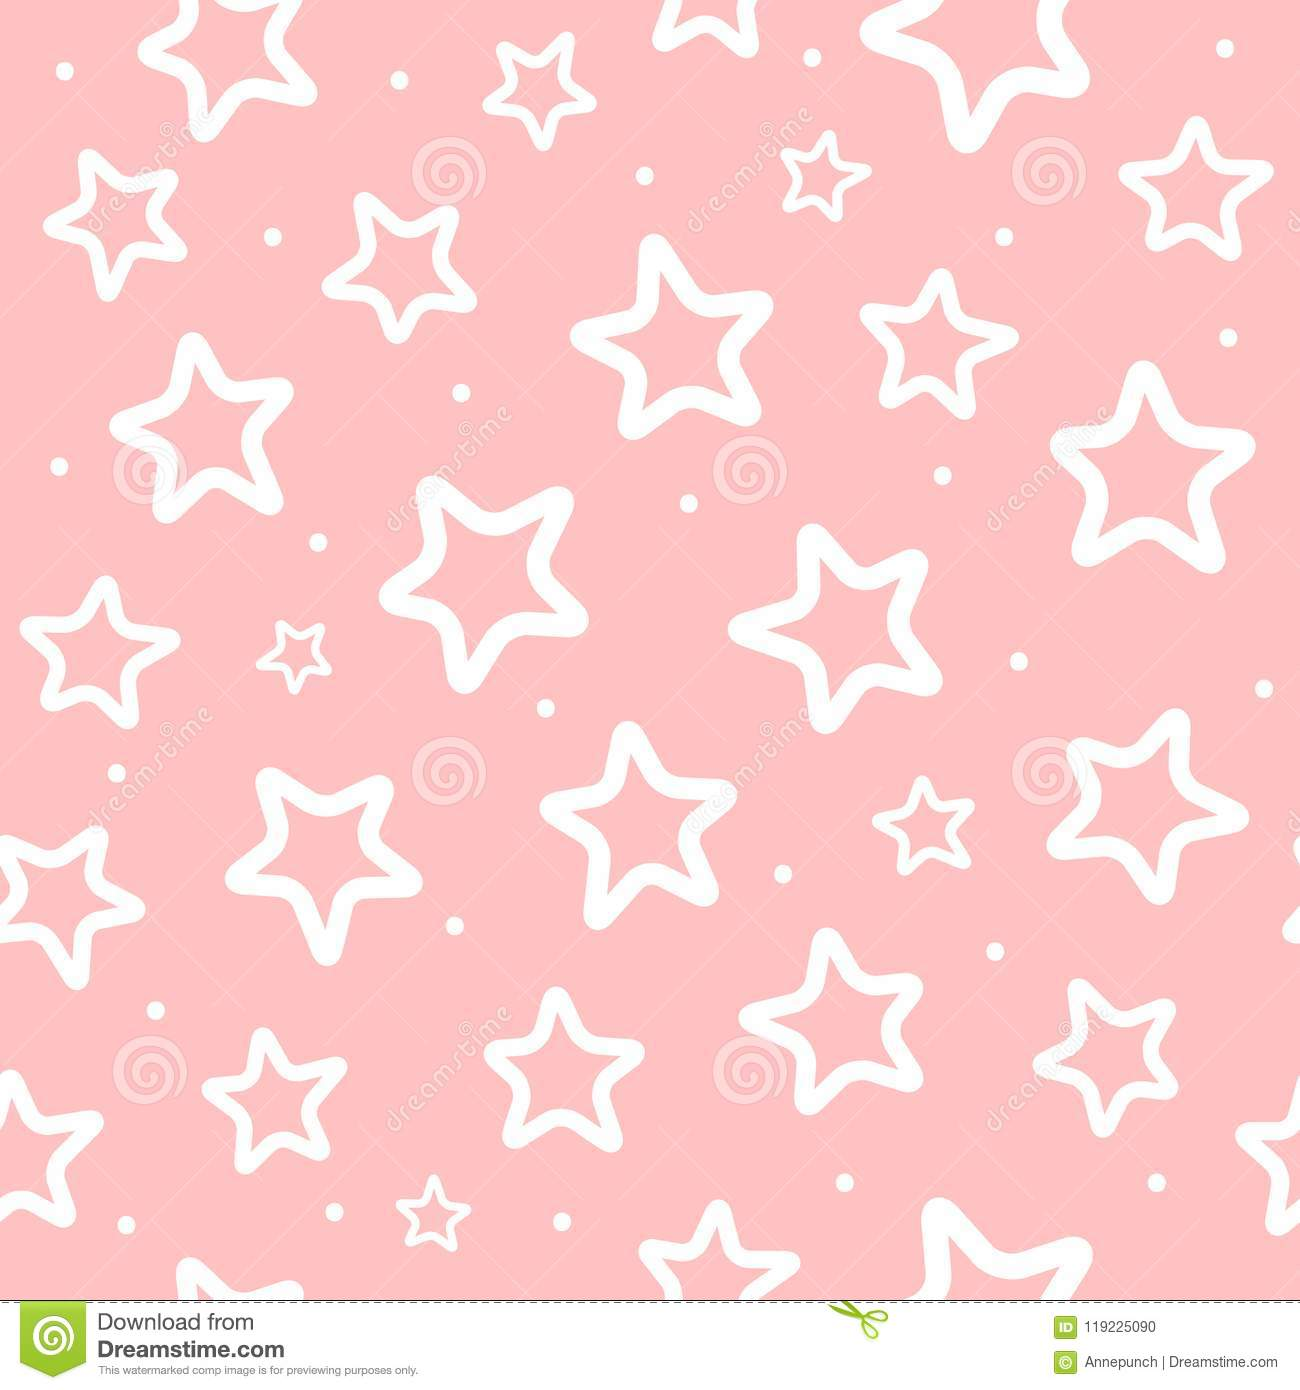 Cute Cartoon Baby Girl Wallpaper Repeated White Round Dots And Outlines Of Stars On Pink